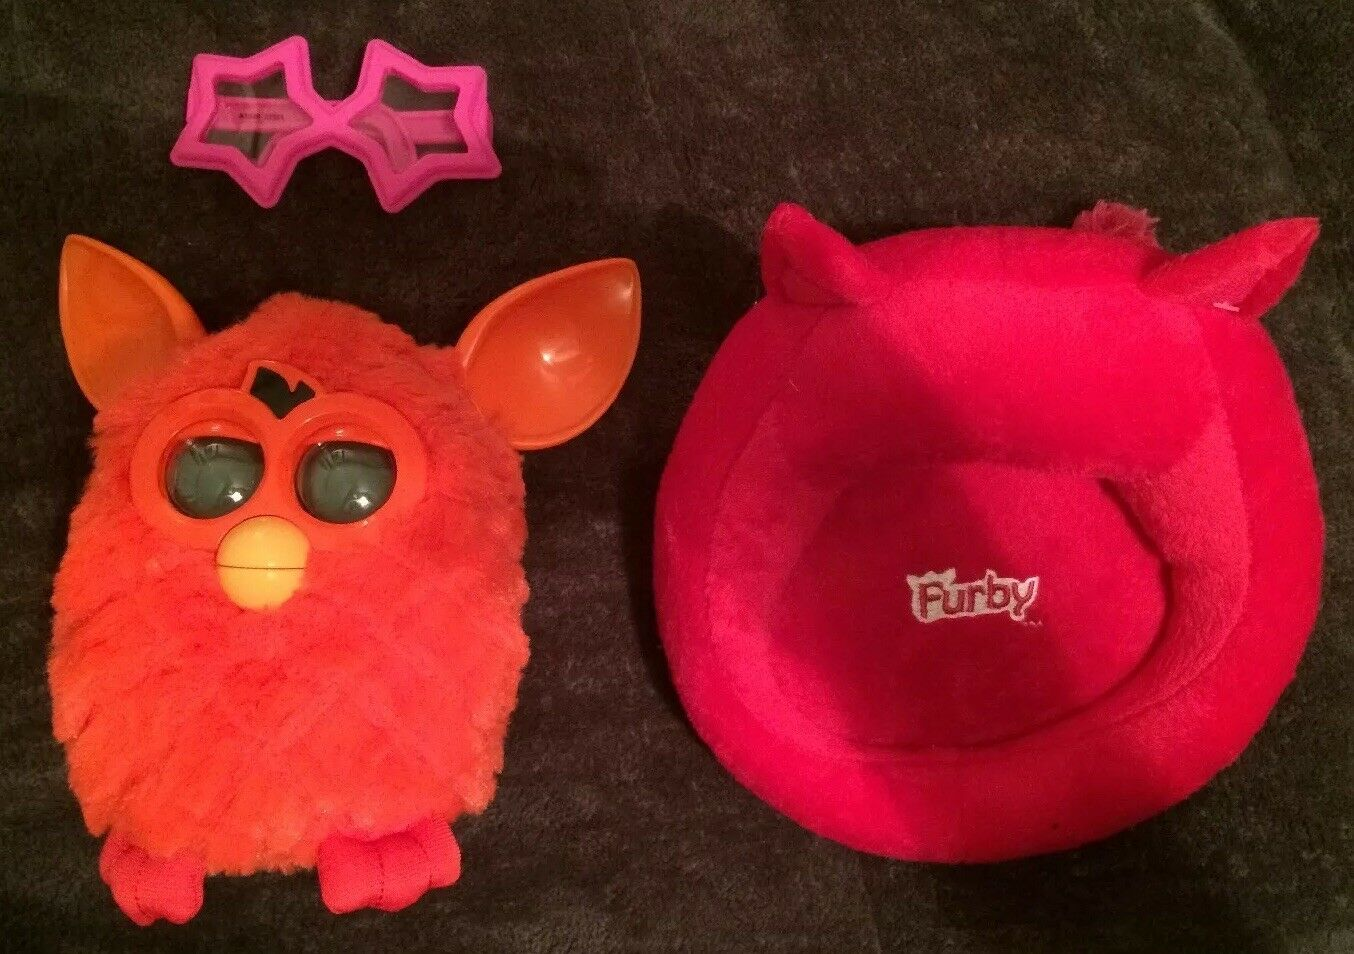 Furby orange Phoenix With Bed And Glasses Toy Electronic 2012 Hasbro Working